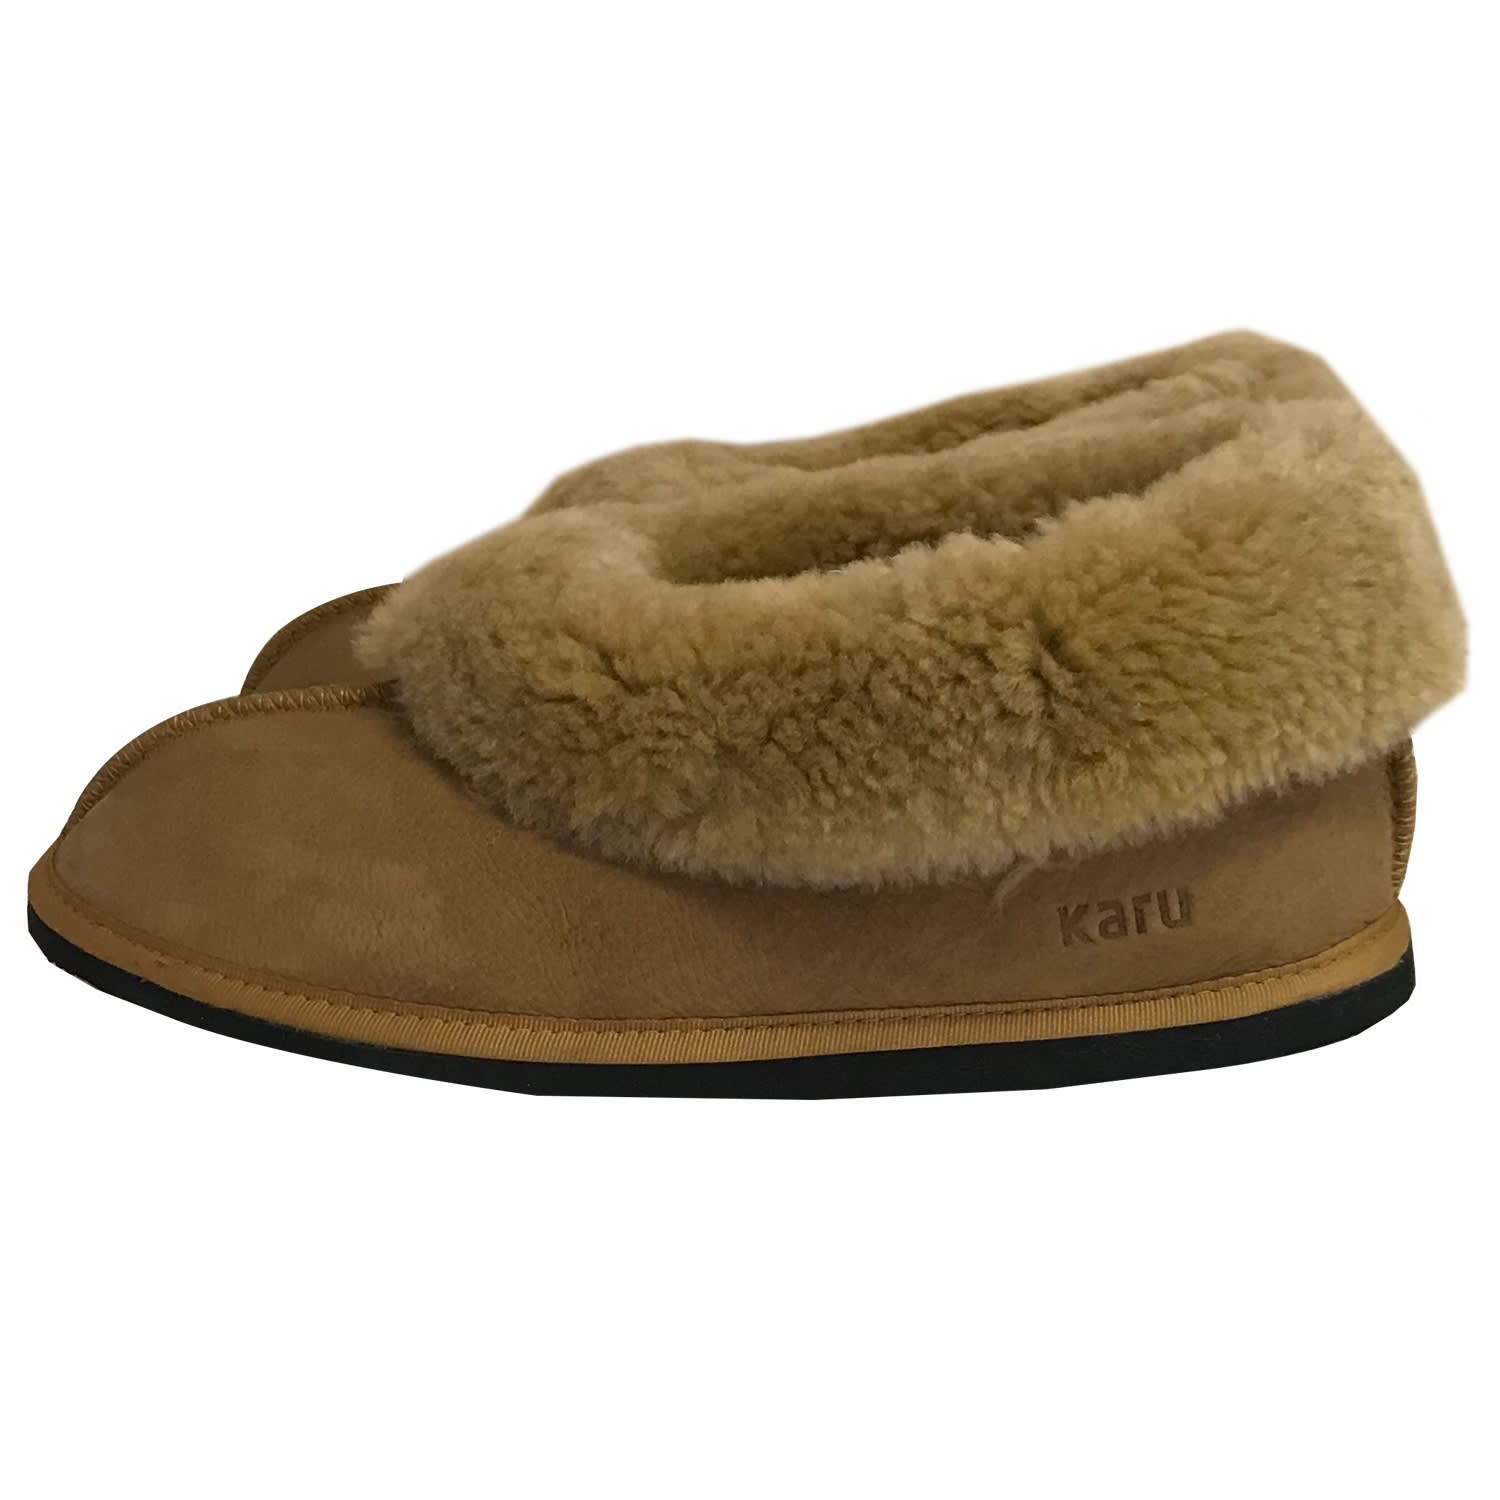 Karu Sheepskin Wool Slippers(Size:8-12)